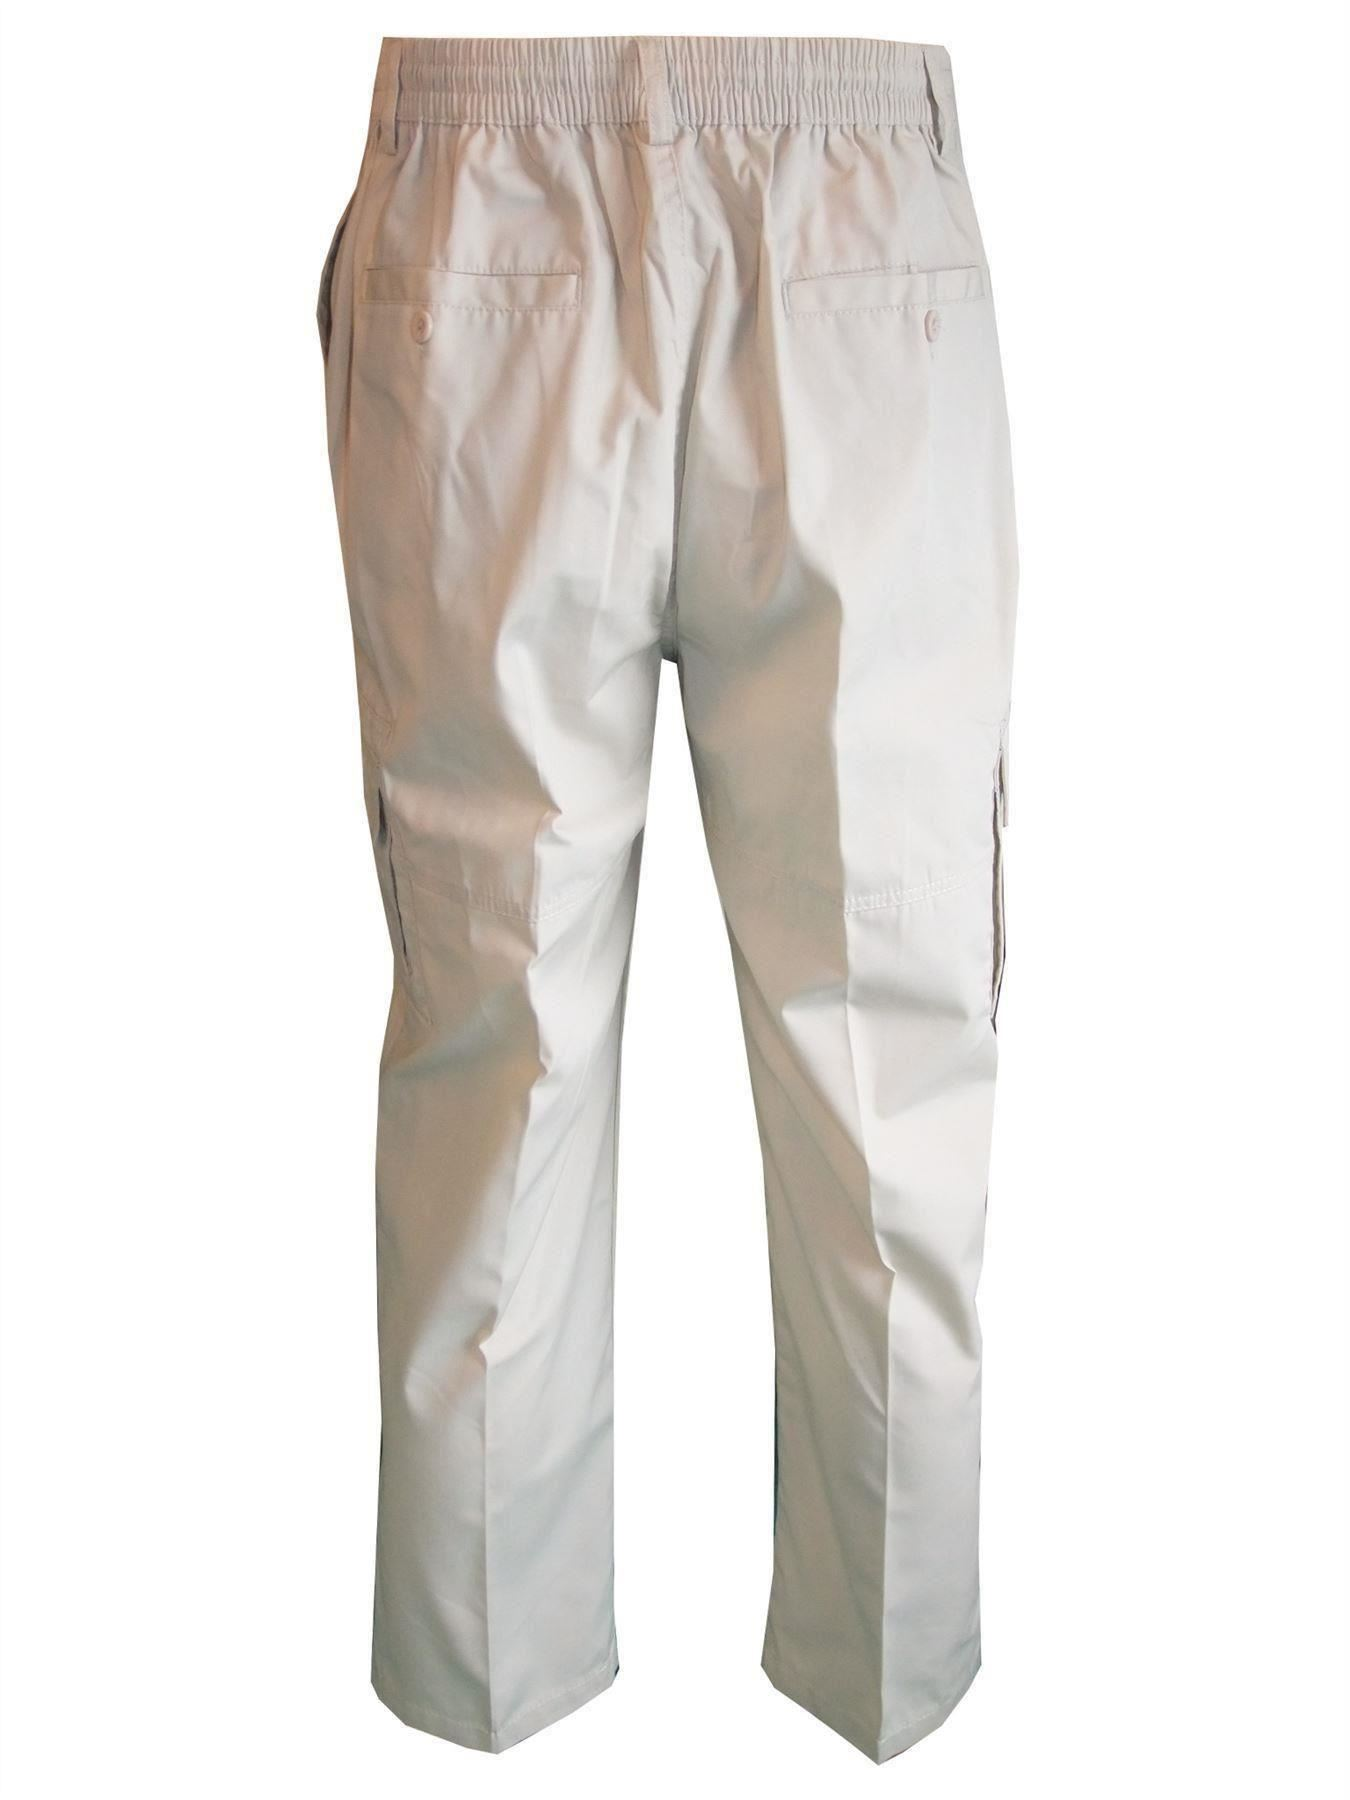 Men-Straight-Trousers-Cargo-Combat-Cotton-Elasticated-Zip-Fly-Casual-Pants-M-3XL thumbnail 16